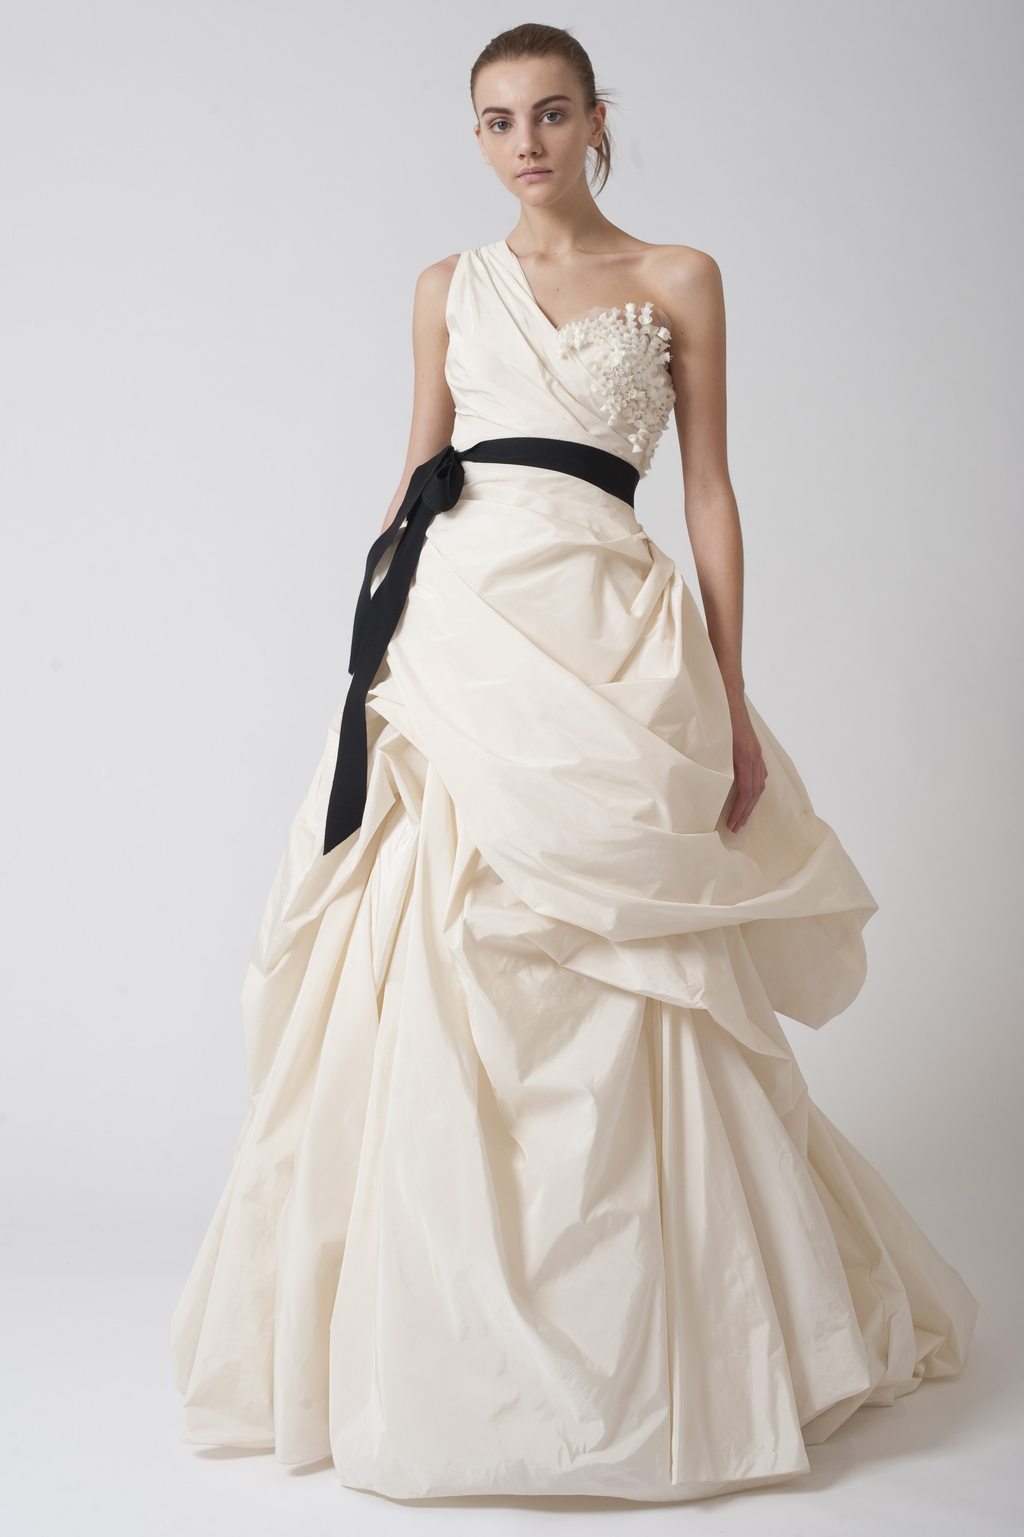 Vera-wang-wedding-dresses-fall-2010-7.full